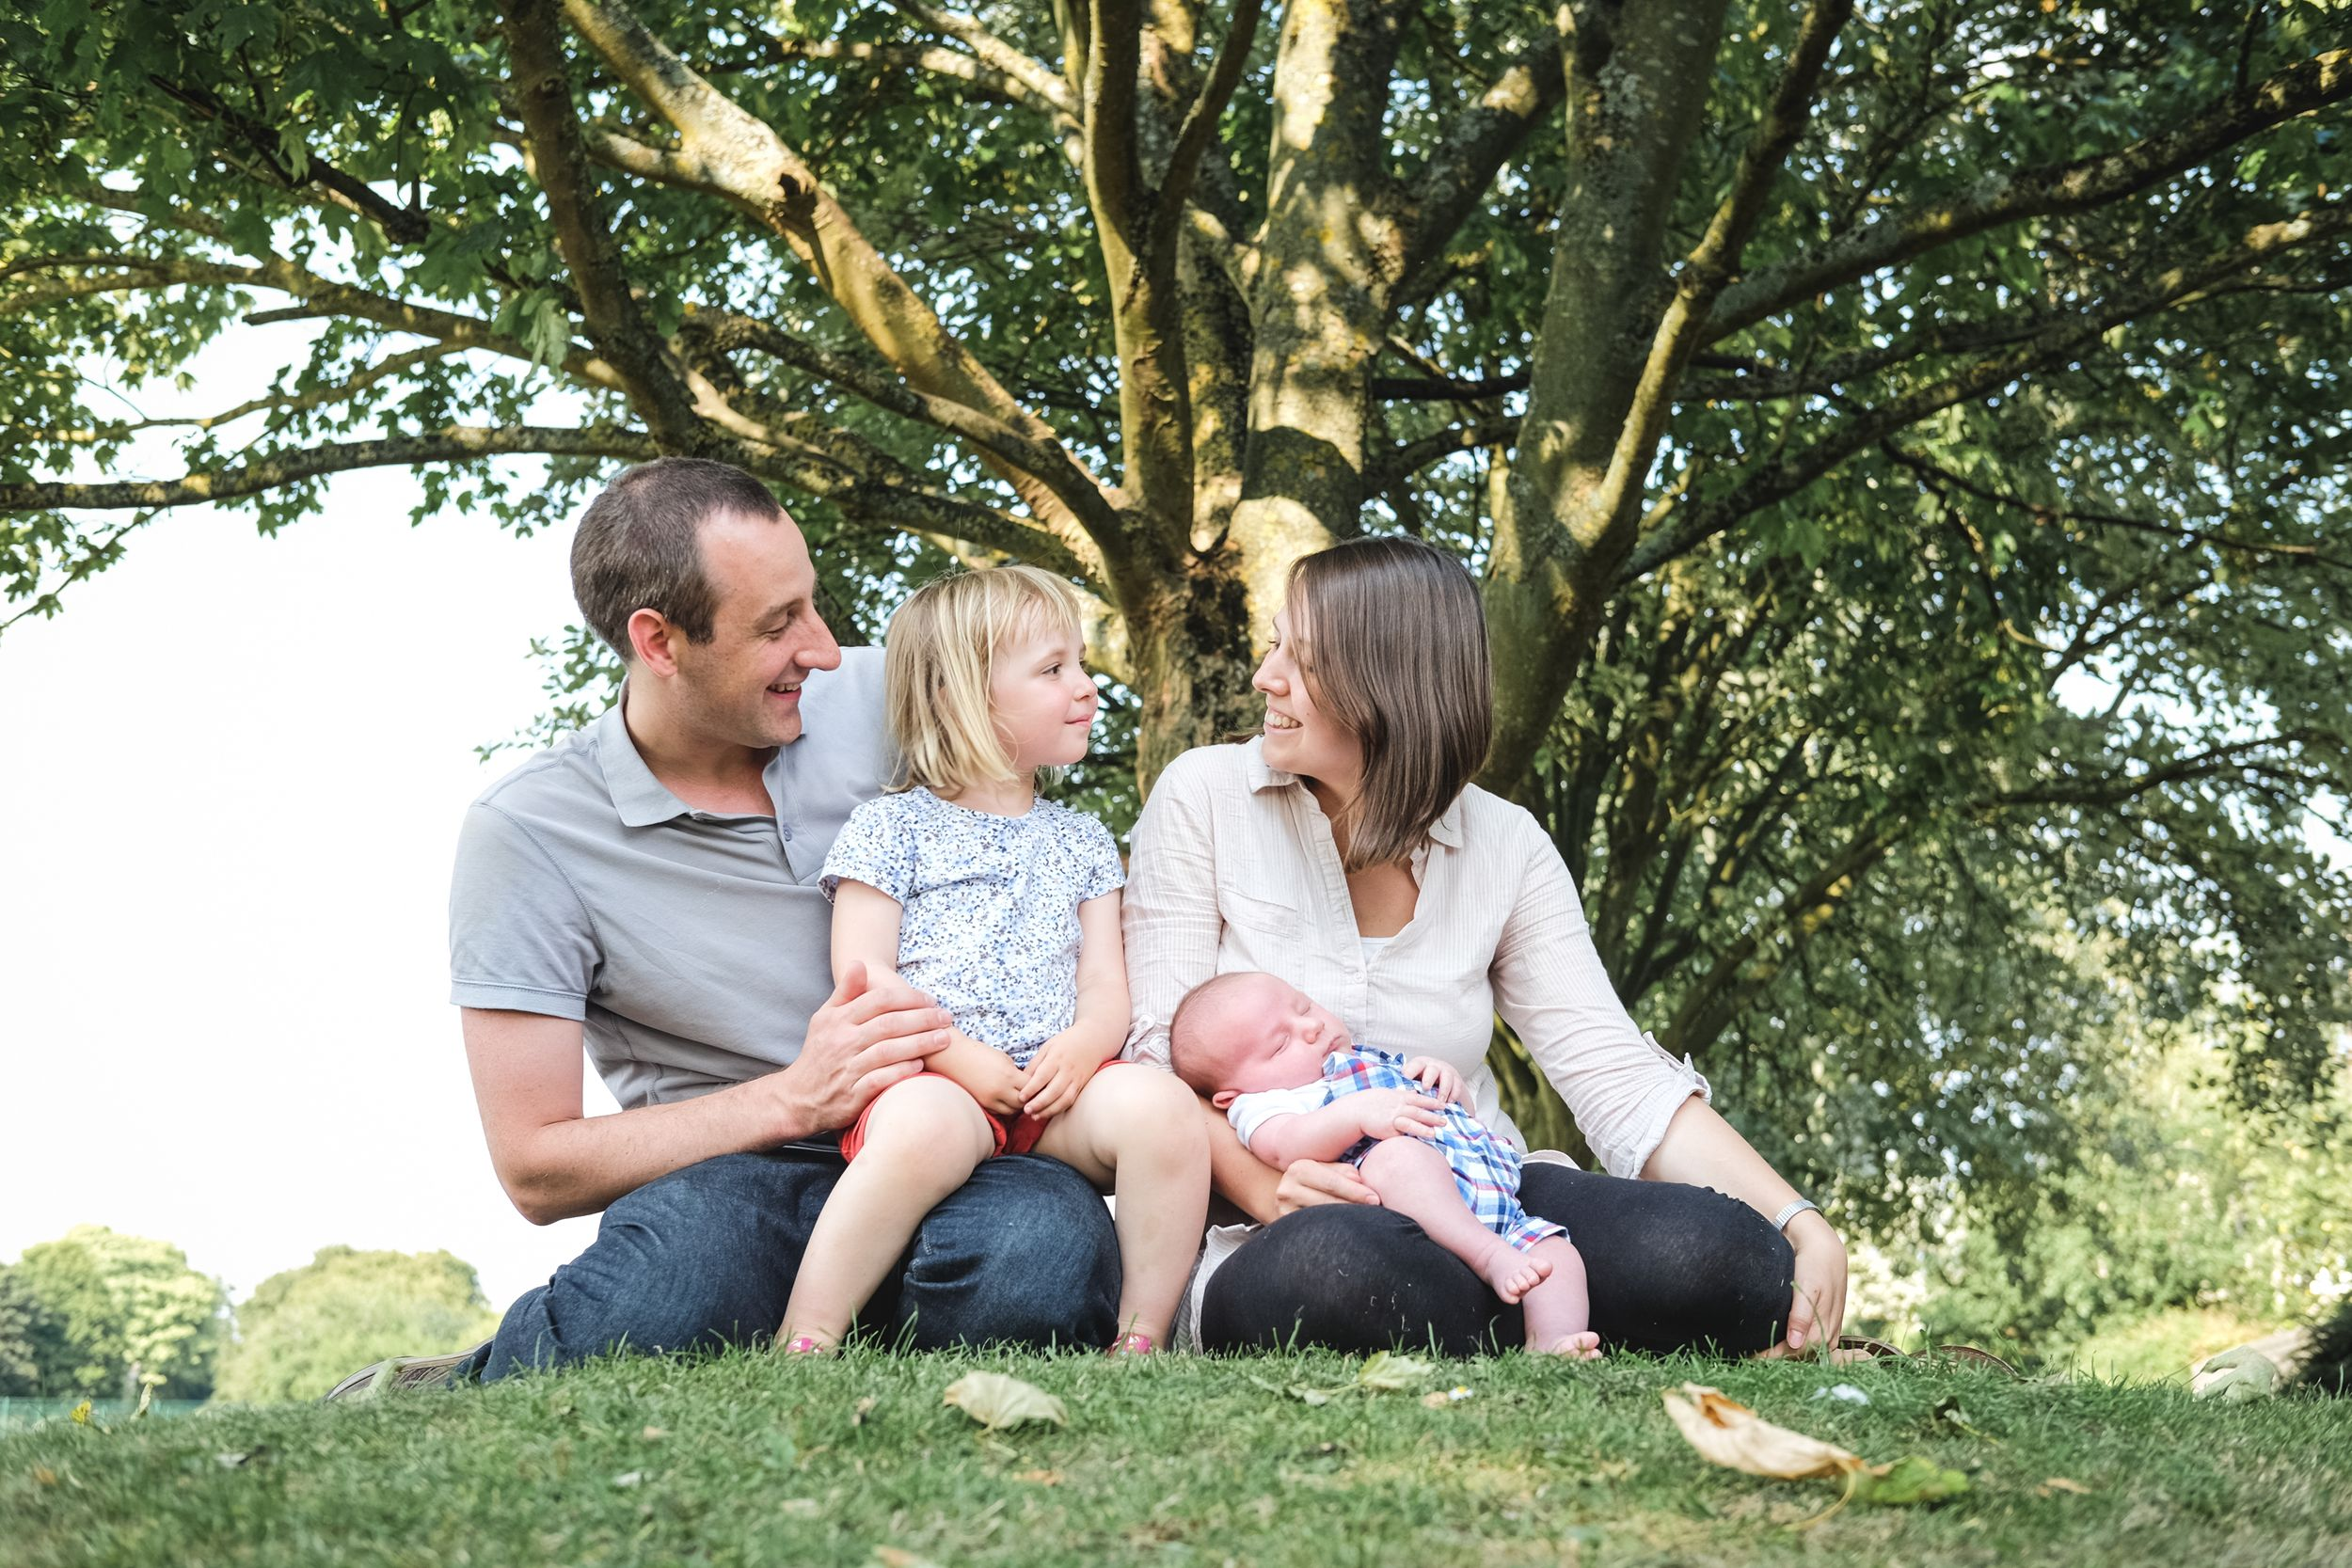 Family Portrait Summer Photography Oxfordshire Oxford Photographer Trees